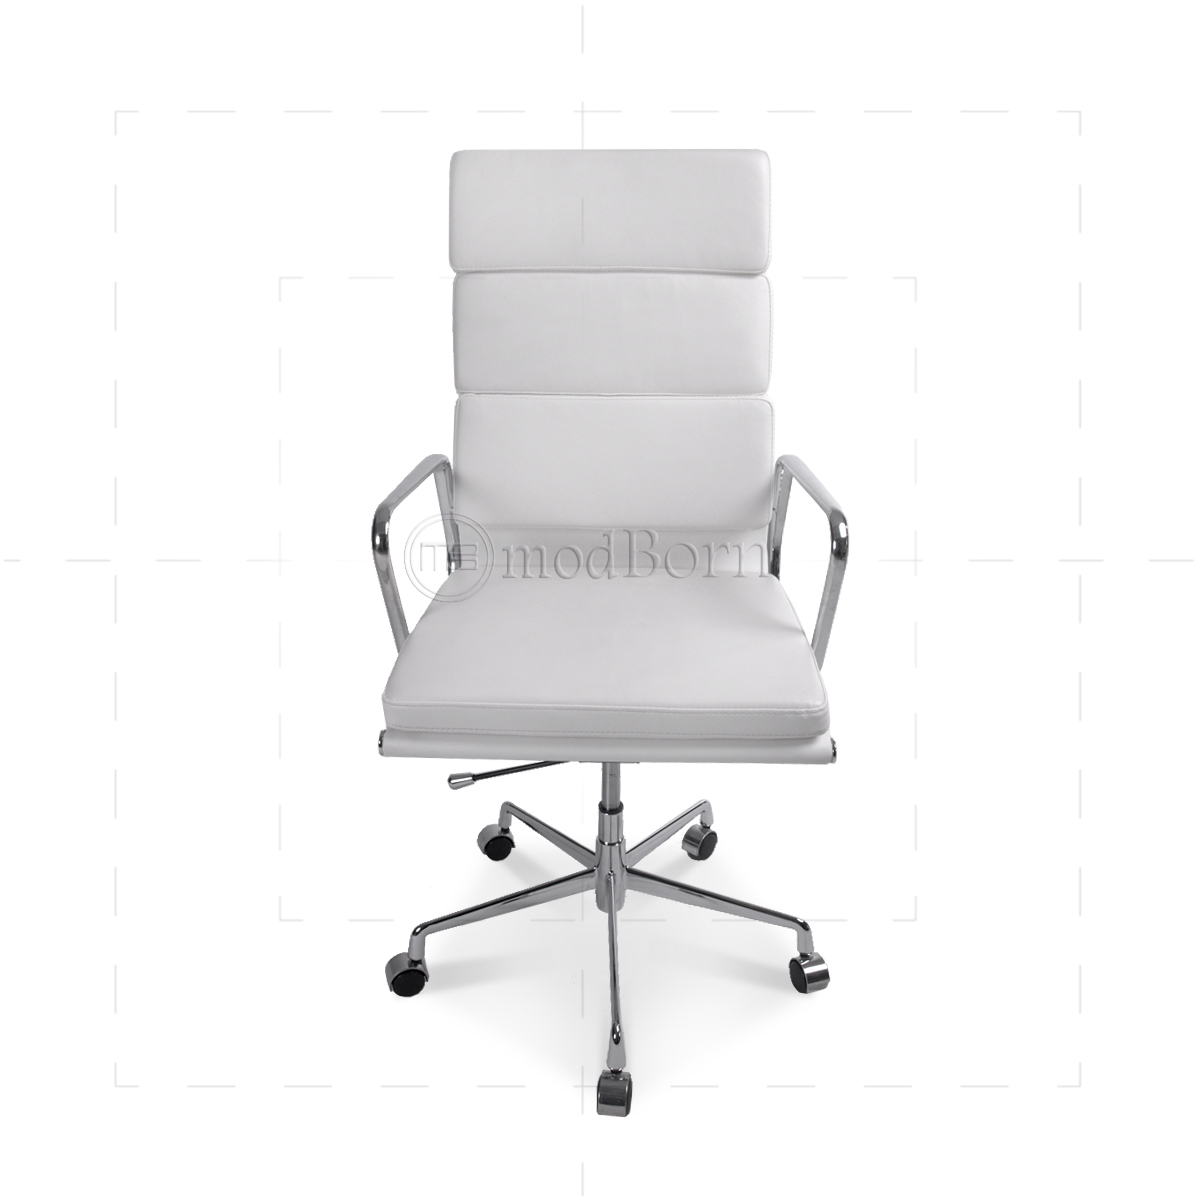 EA219 Eames Style Office Chair High Back Soft Pad White Leather Replica